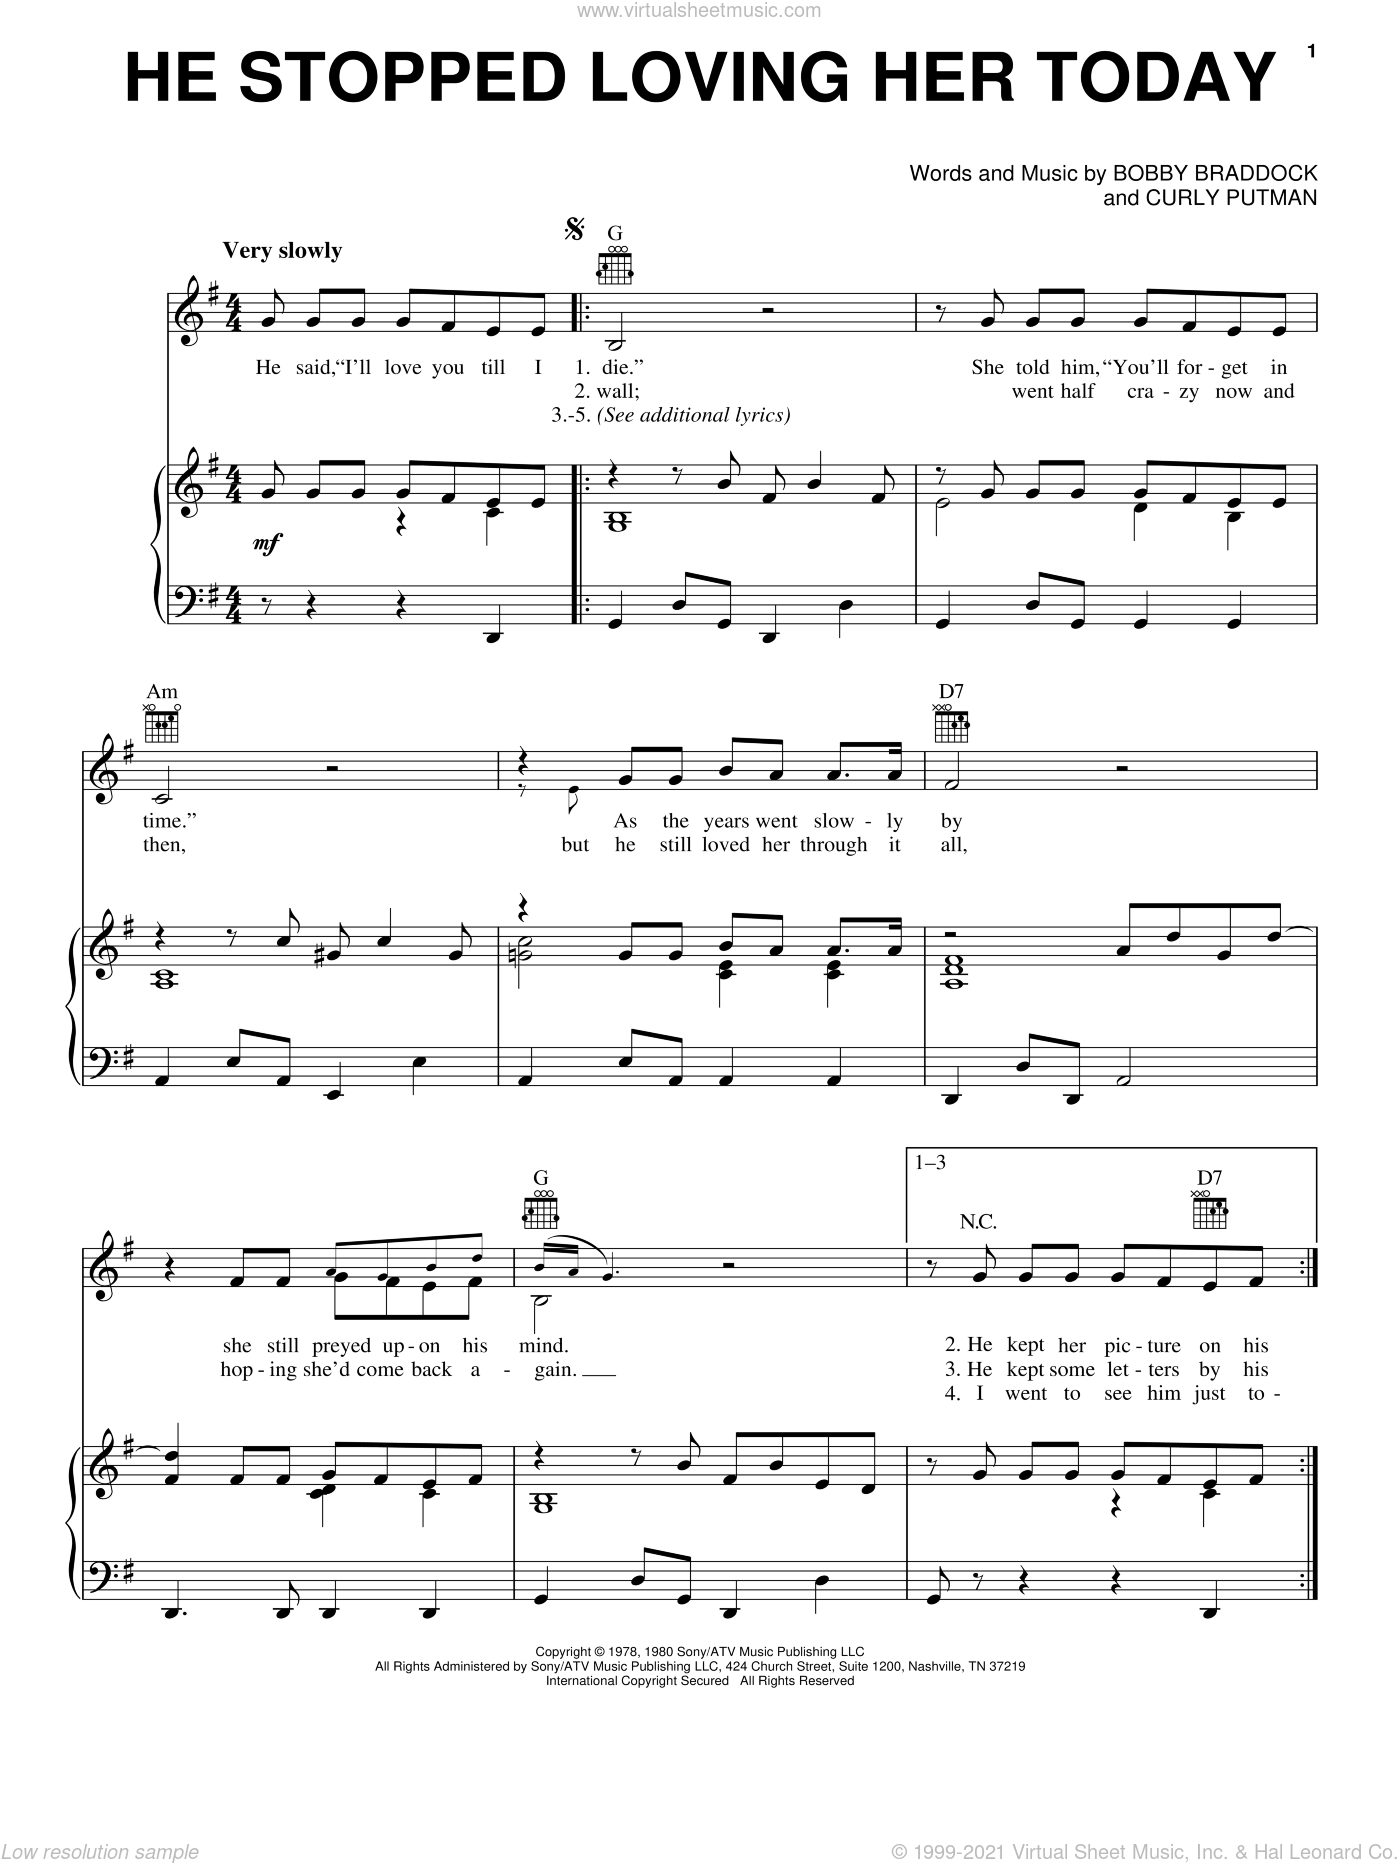 He Stopped Loving Her Today sheet music for voice, piano or guitar by Curly Putman